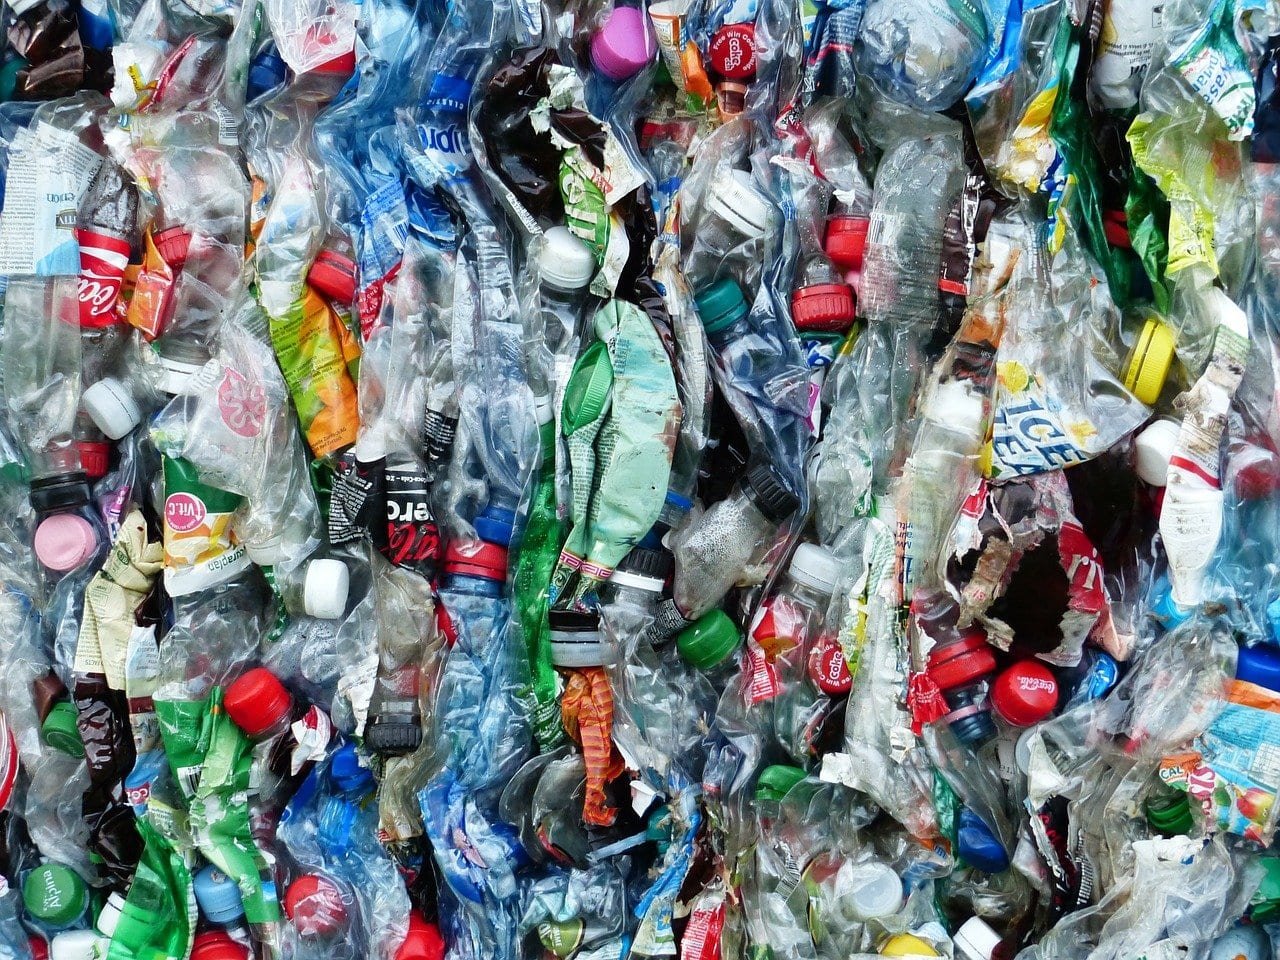 This picture is completely filled with used and crumpled plastic bottles